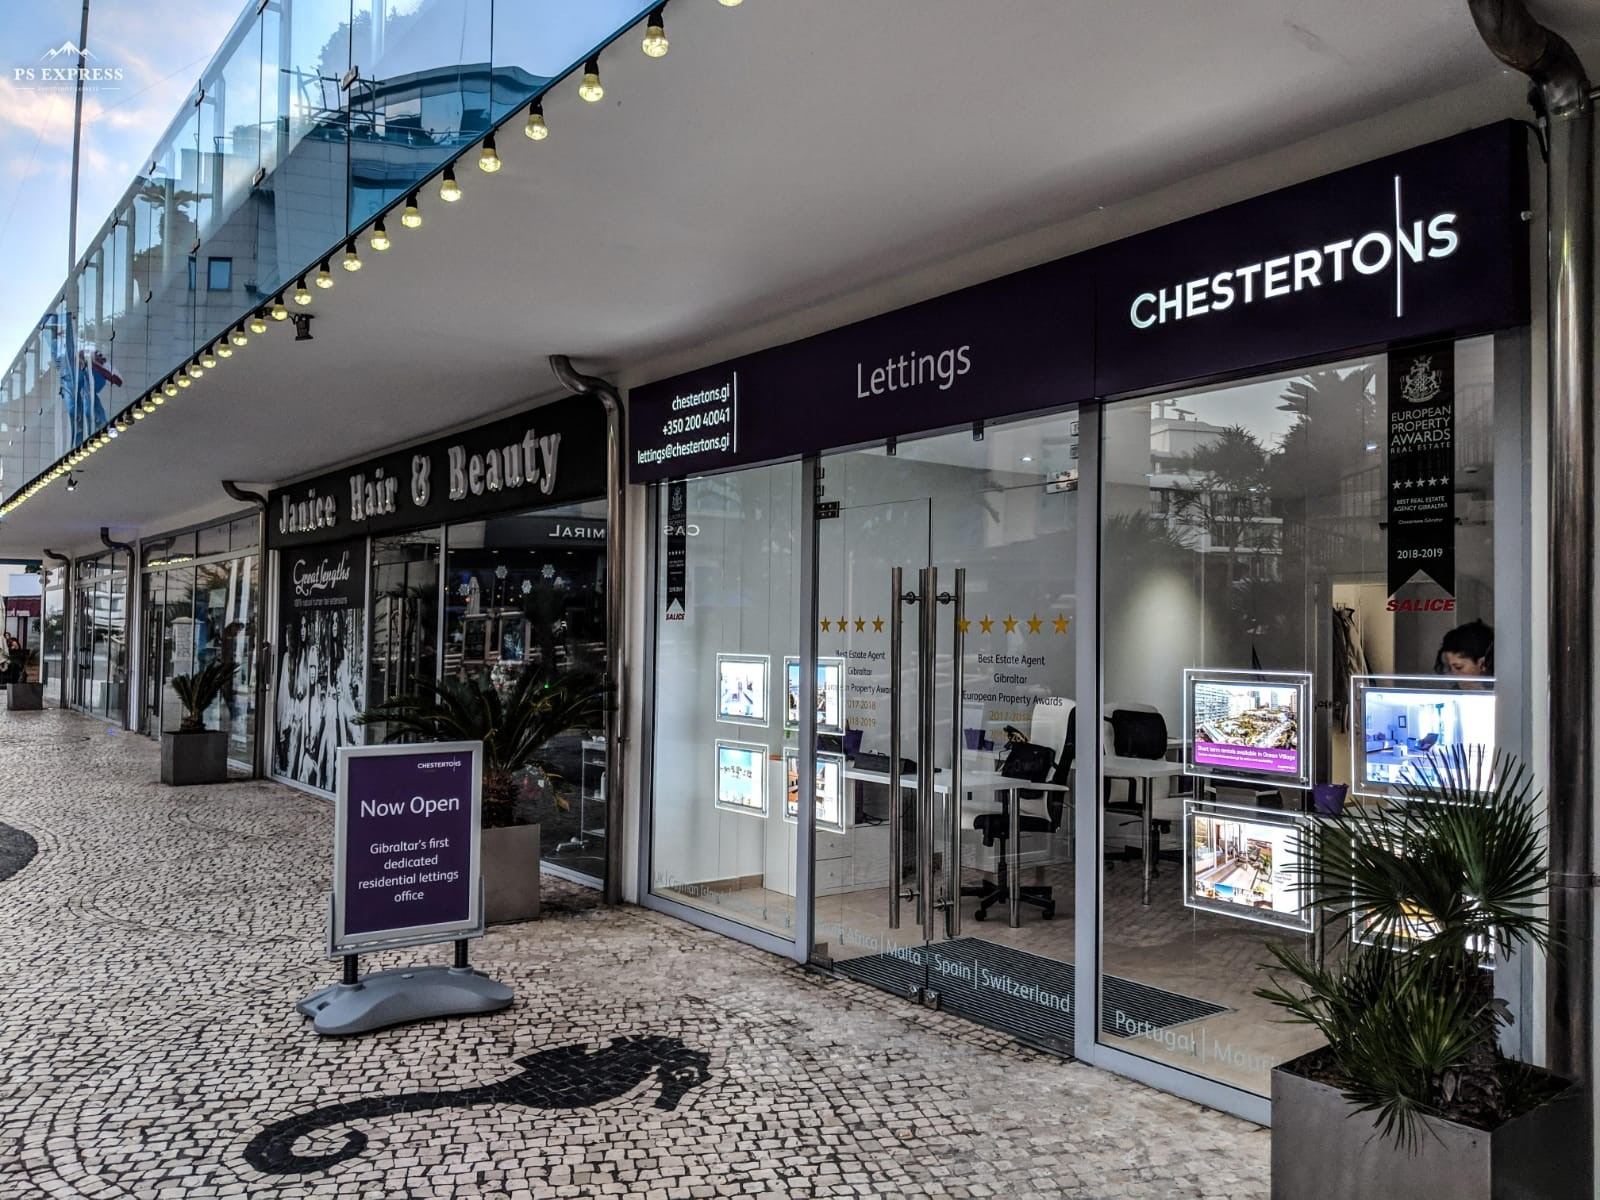 Chestertons opens Gibraltar's first dedicated Lettings office Image